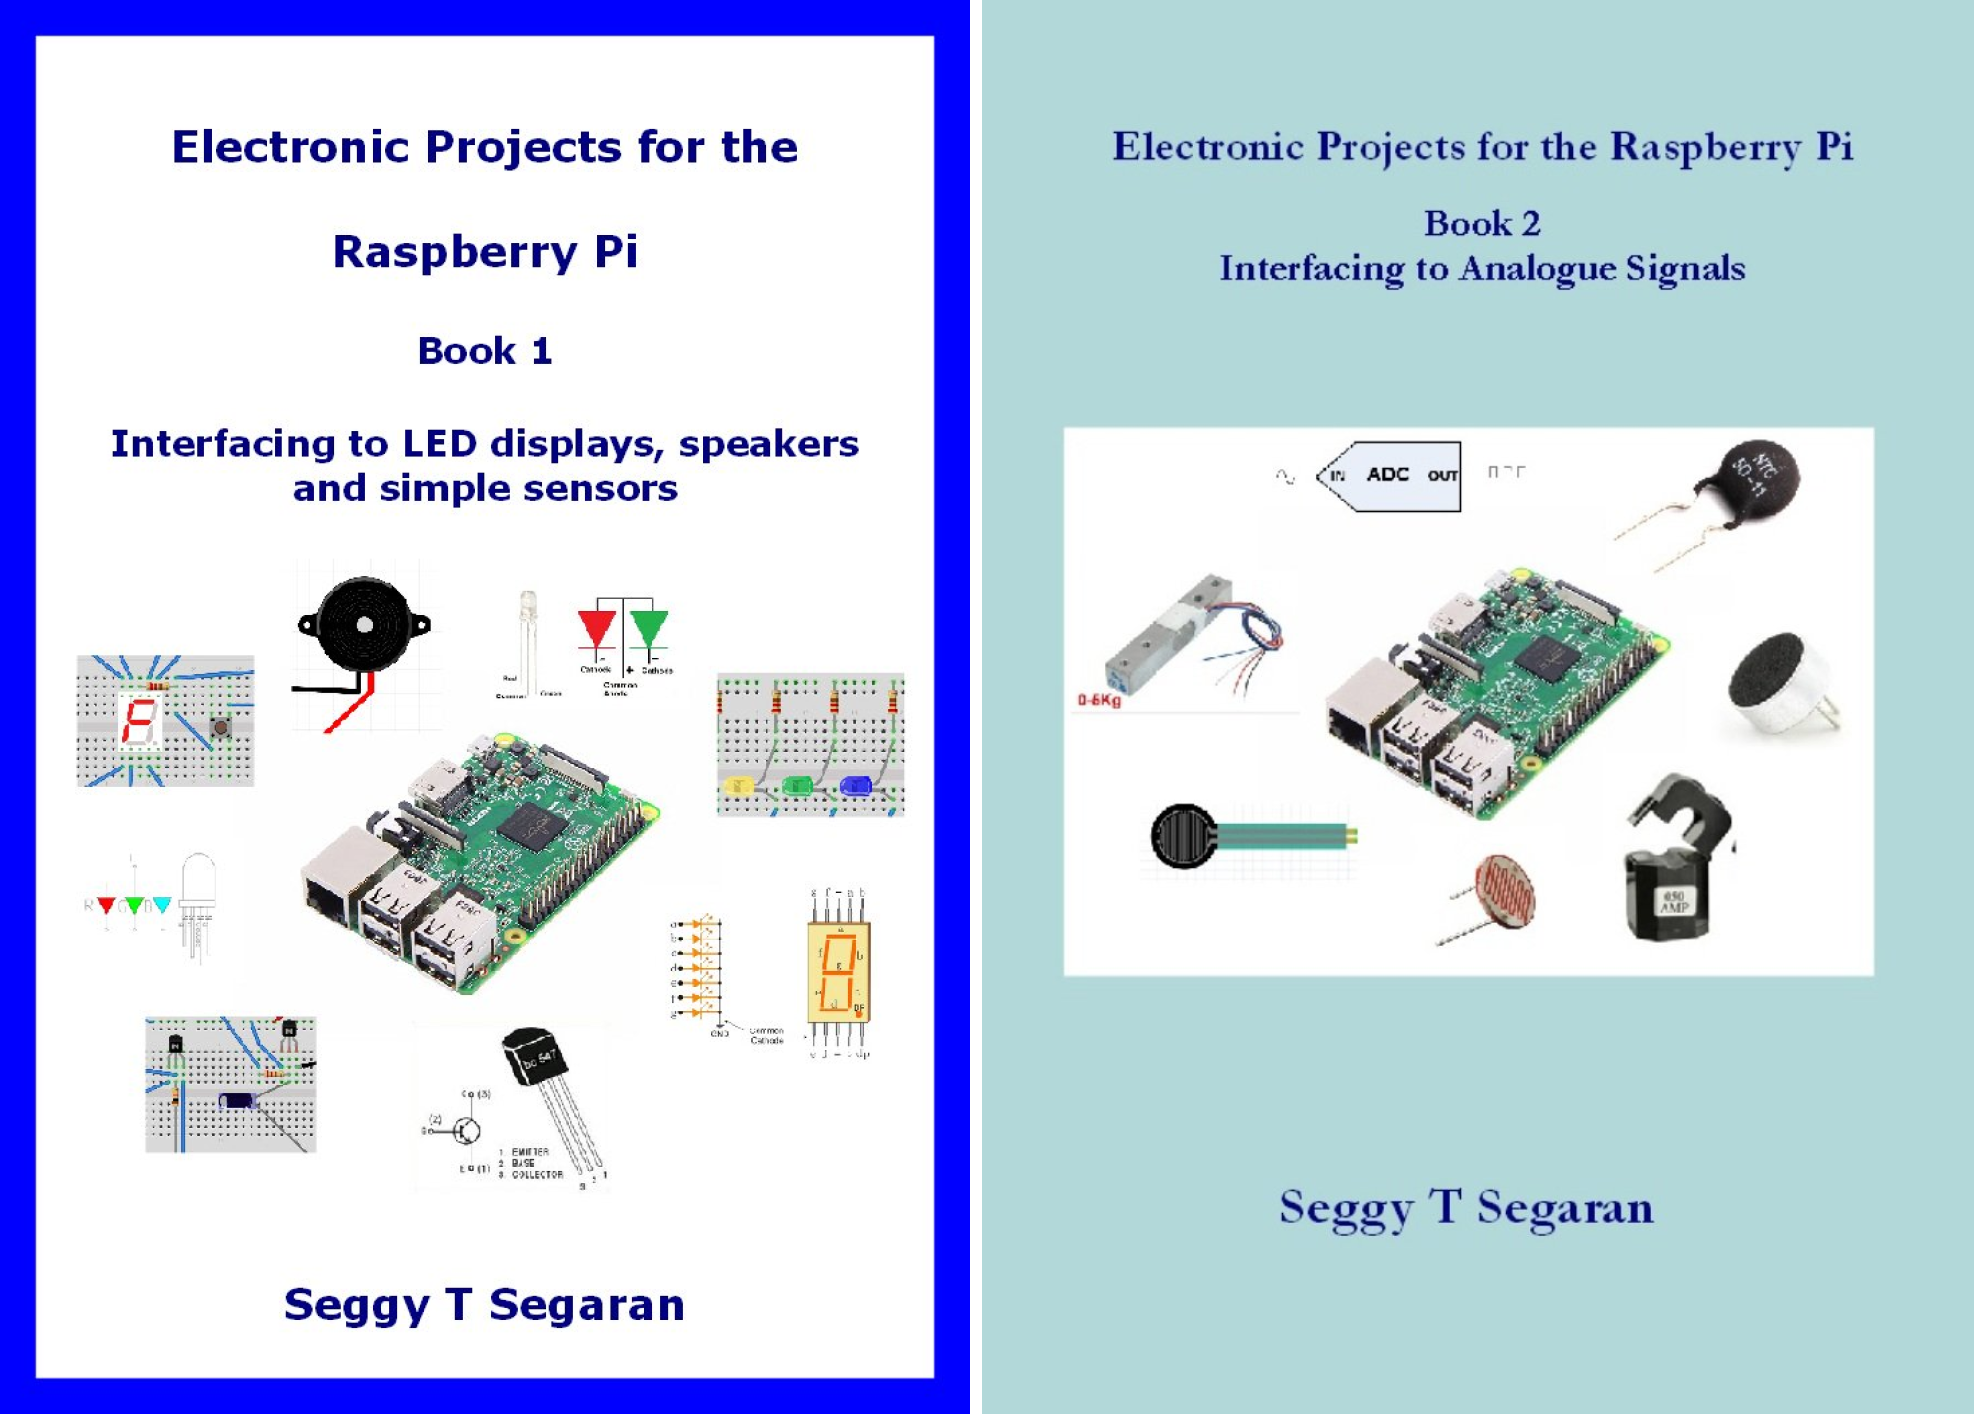 Electronic Projects for the Raspberry Pi (2 Book Series)